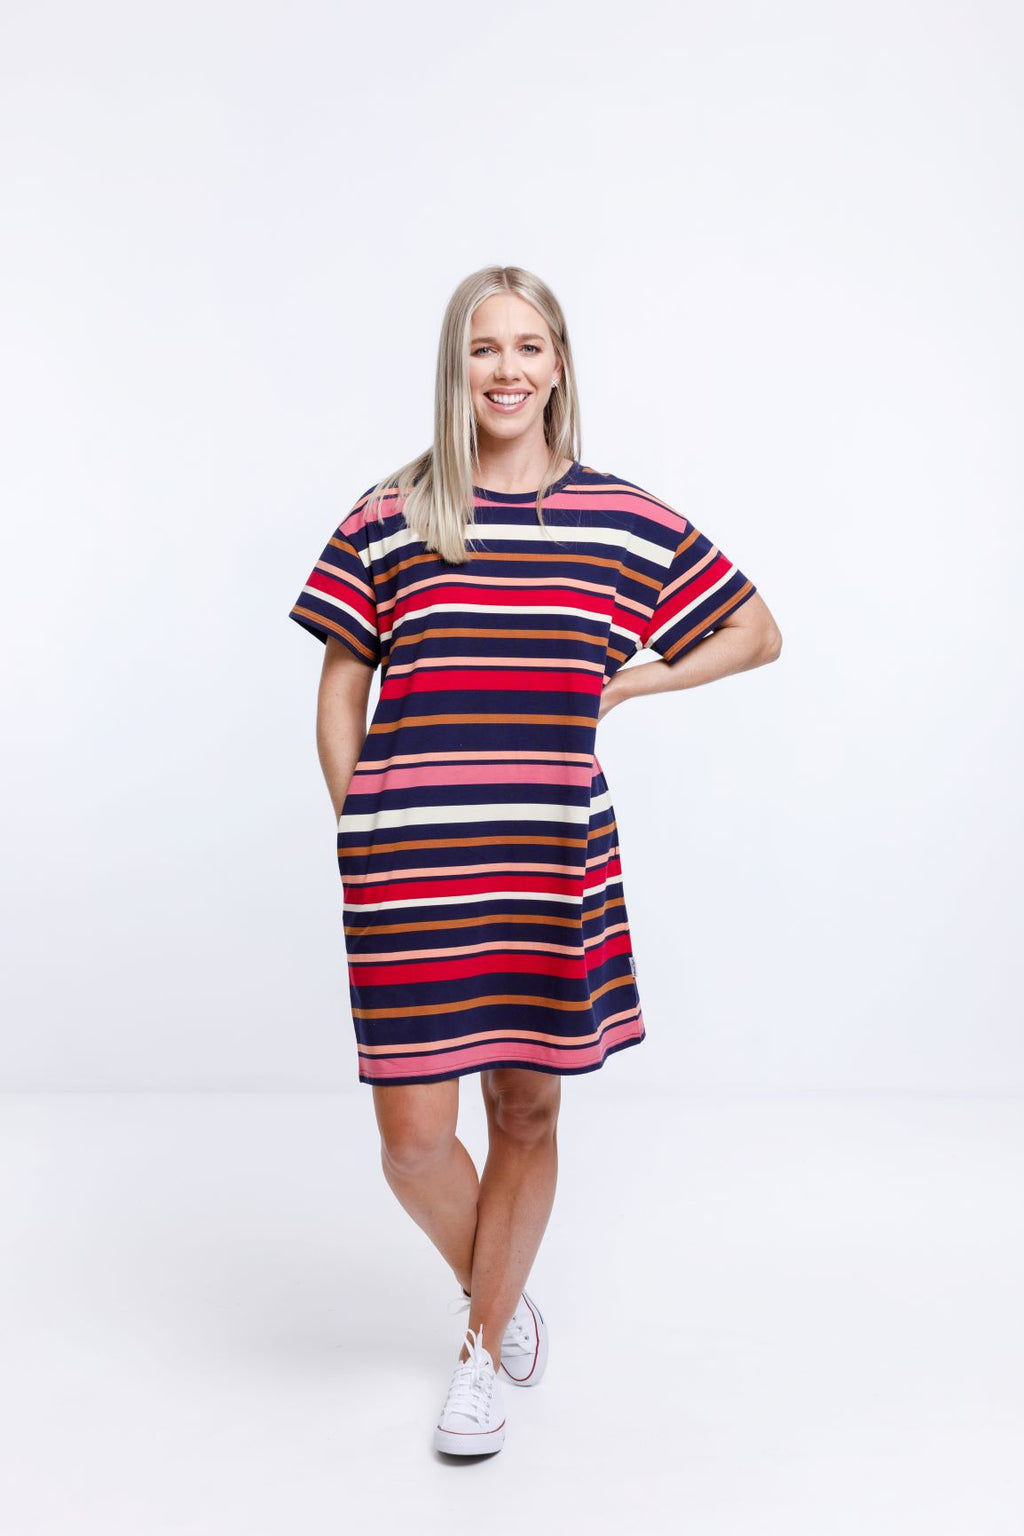 BOYFRIEND DRESS - Autumn Stripe Print